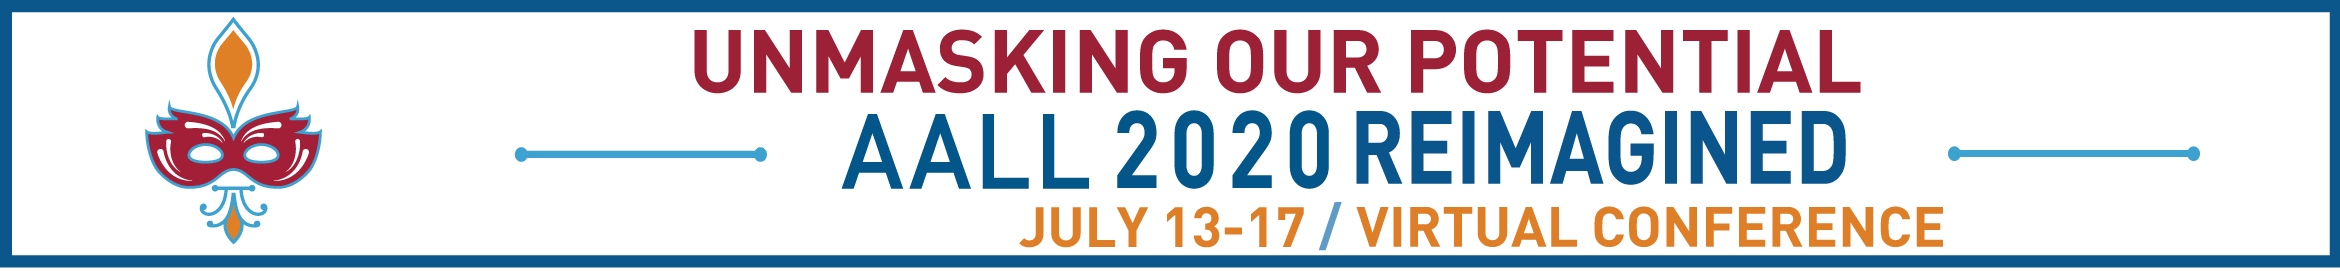 AALL 2020 Reimagined: Unmasking Our Potential Main banner